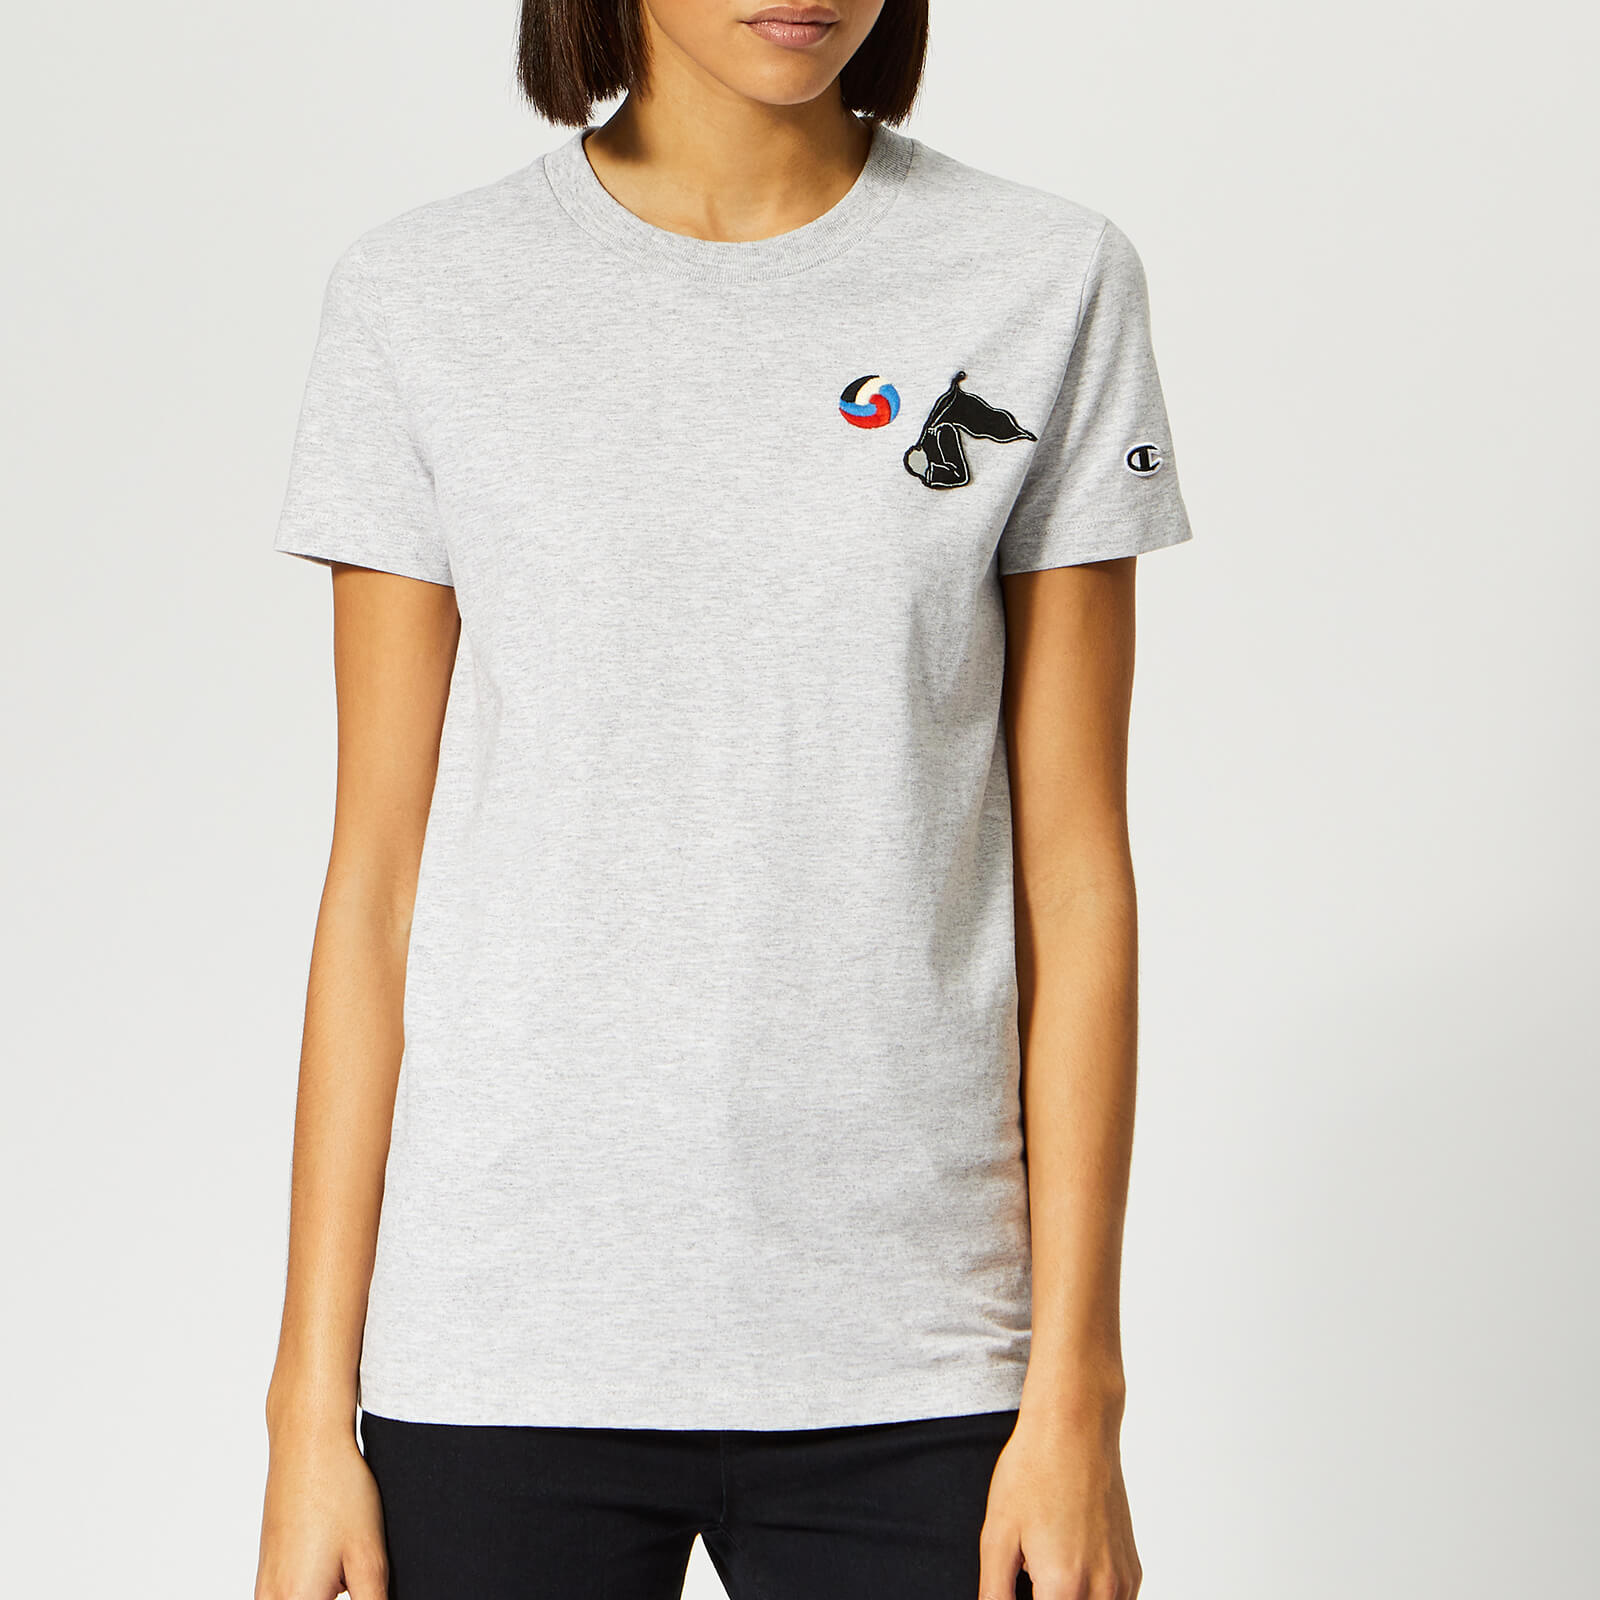 89adb276 Champion X WOOD WOOD Women's Lyn Crew Neck T-Shirt - Grey - Free UK  Delivery over £50